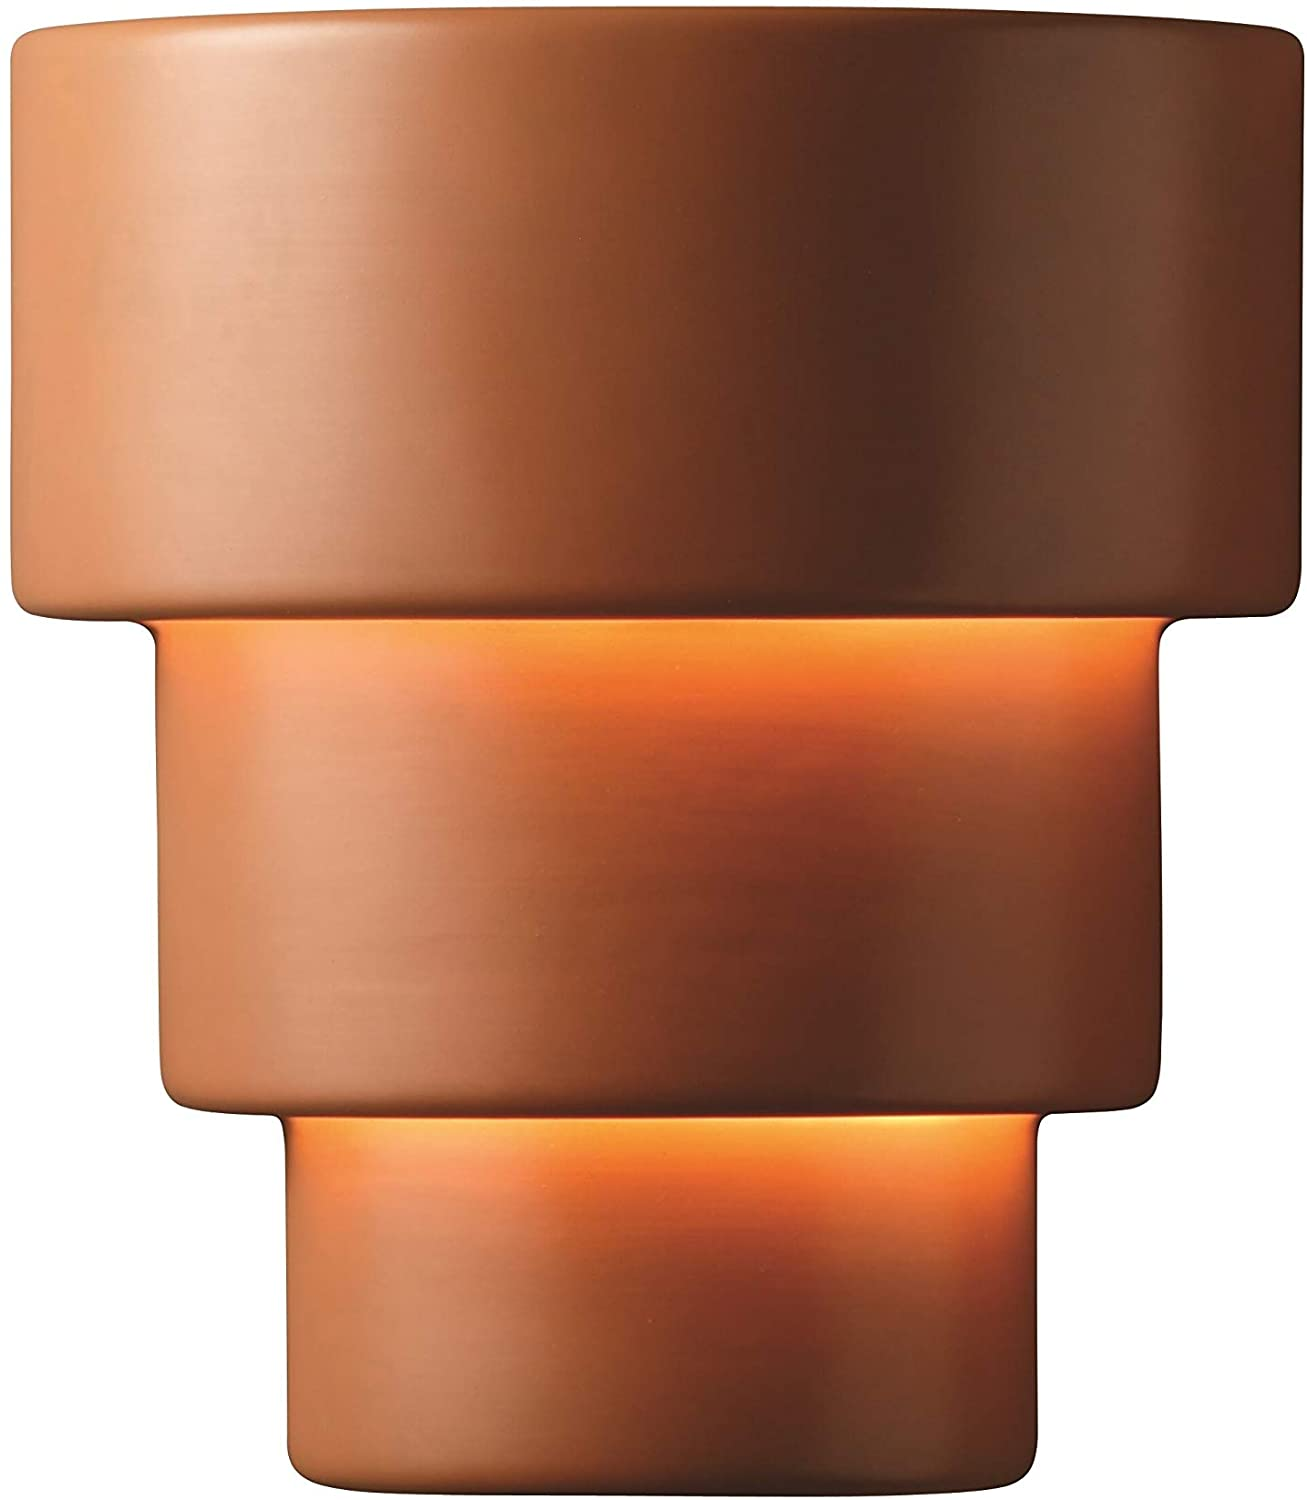 Justice Design Ambiance Terra Cotta Outdoor Large Terrance Wall Sconce